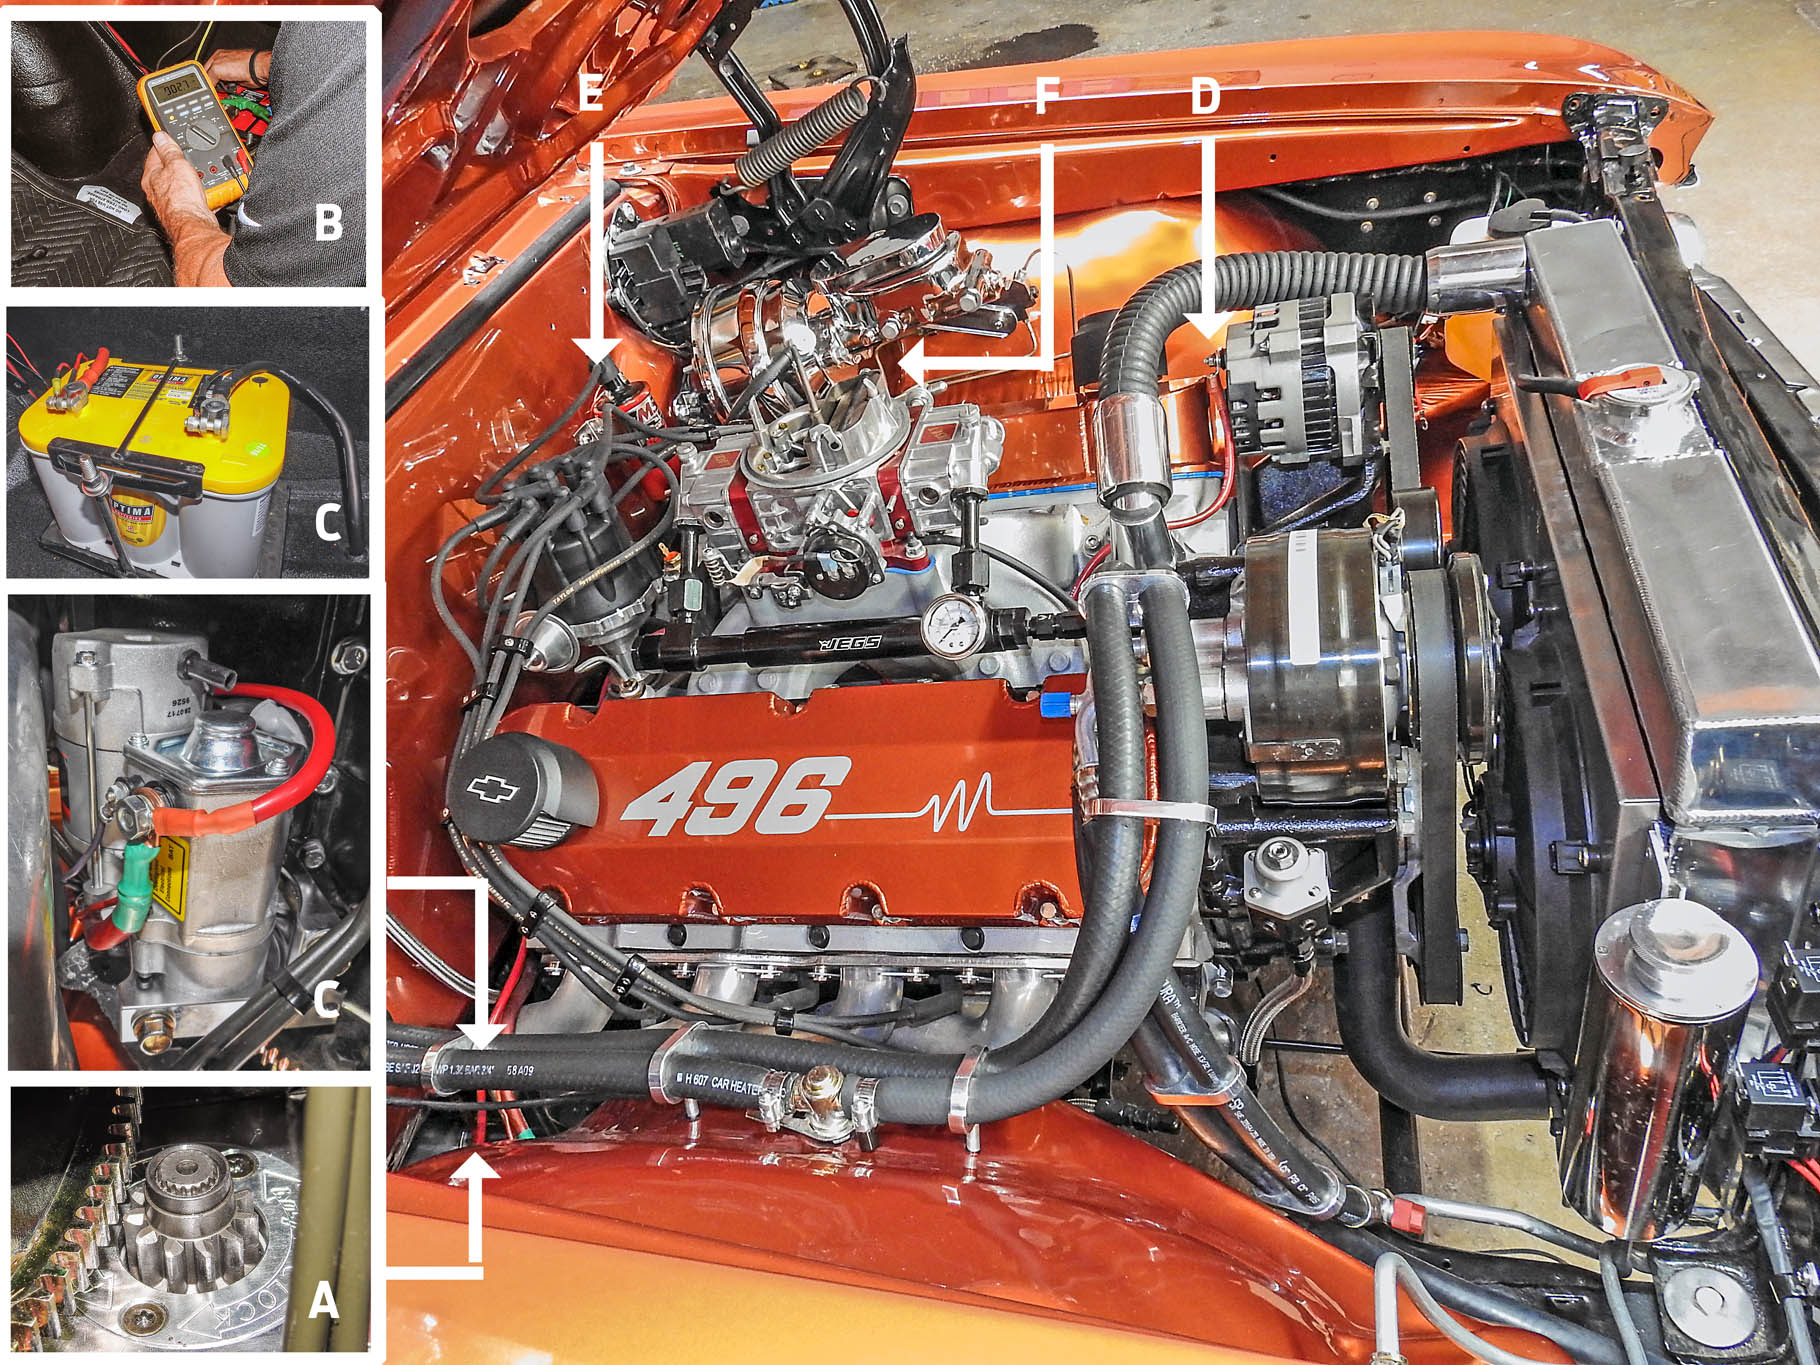 hight resolution of hot rod rescue 1966 chevelle with starter ignition problems hot 69 chevelle starter wiring 66 chevelle wiring diagram malibu starter wire